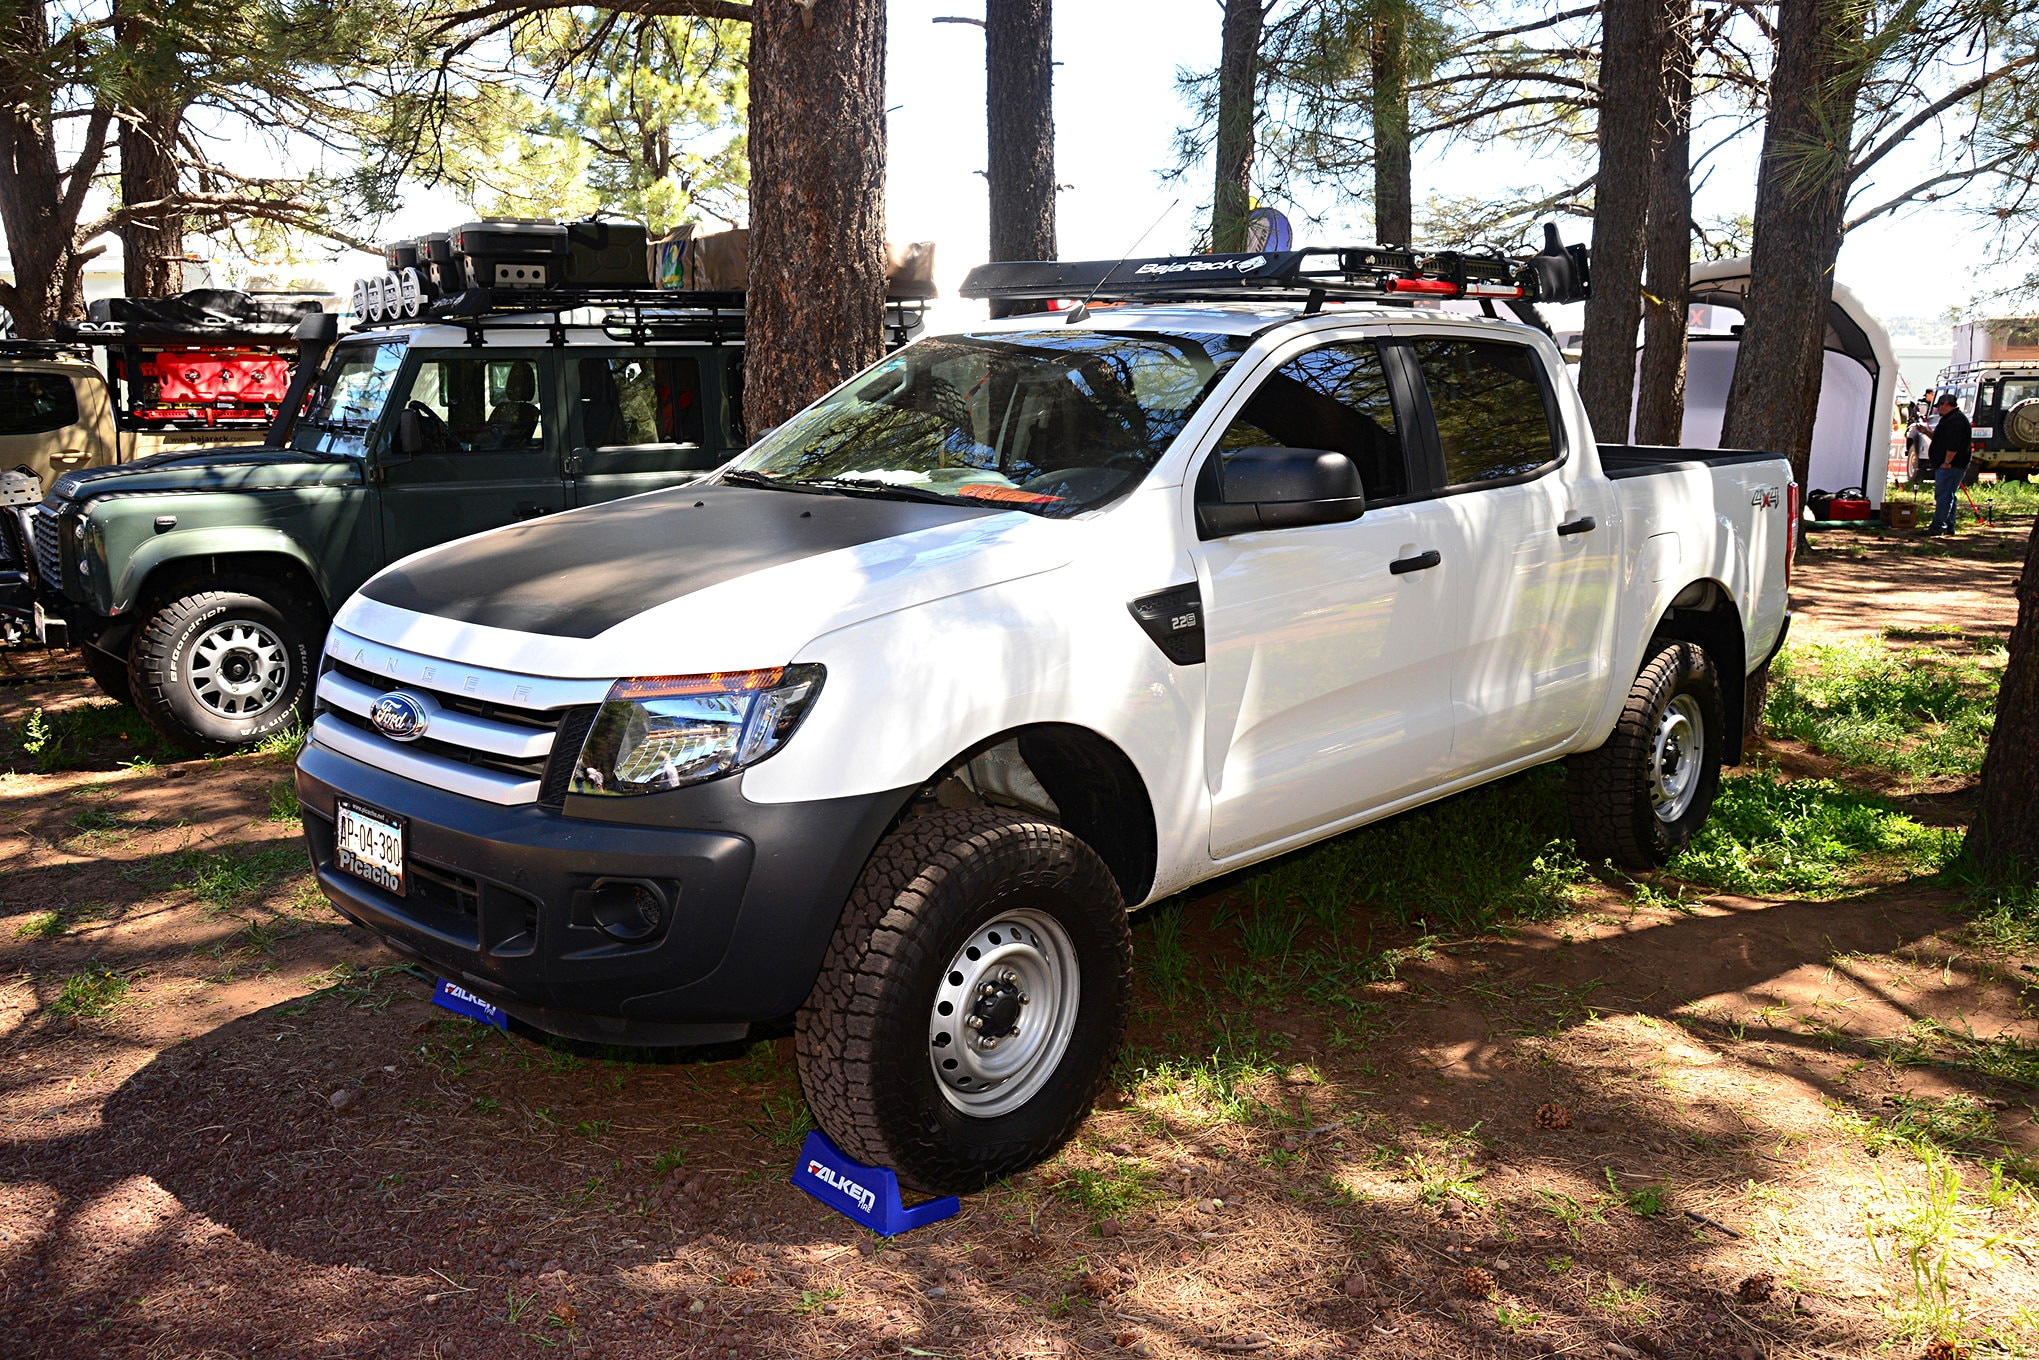 013 2016 Overland Expo 4x4 Vehicles Camping Flagstaff Mormon Lake Arizona Ford Ranger Diesel Photo 178316855